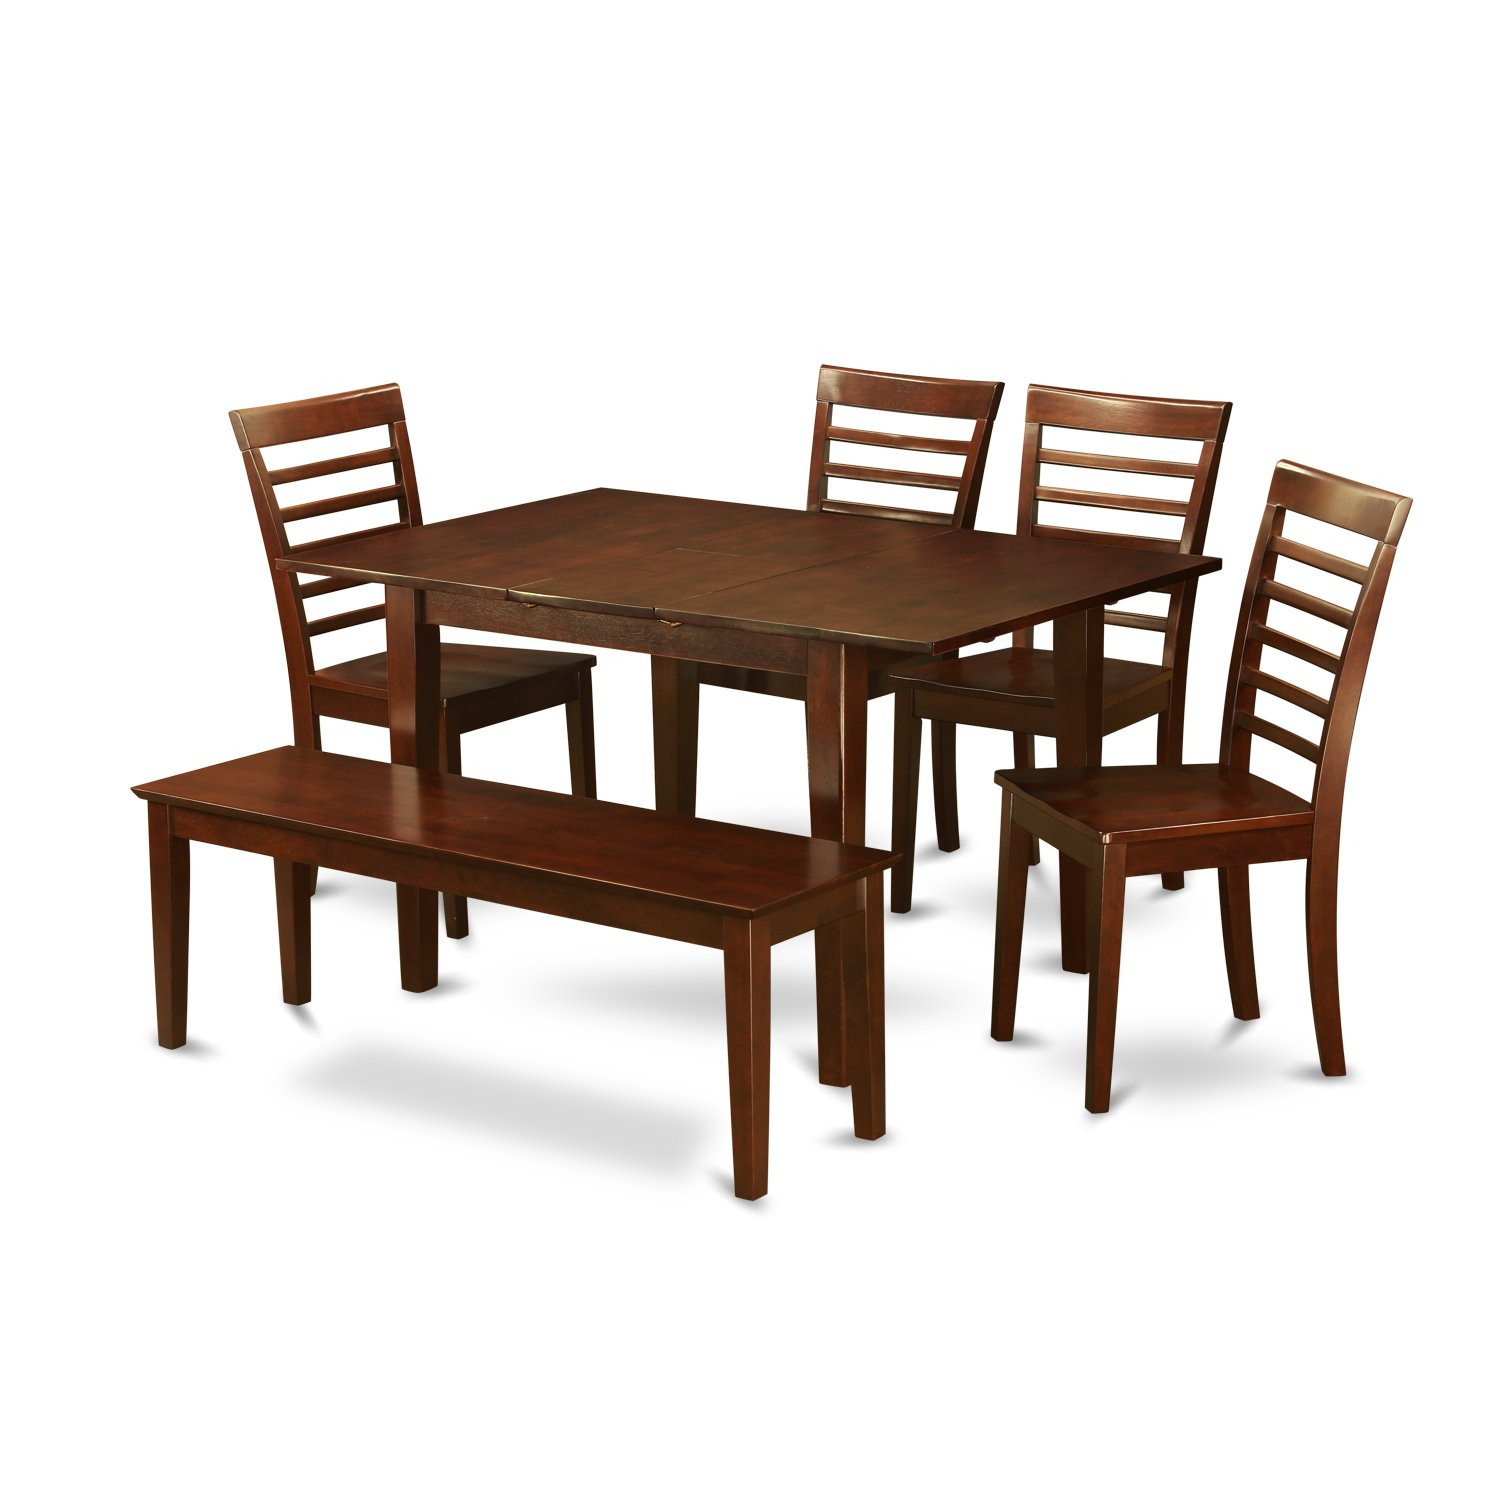 PSML6D-MAH-W 6 Pc Dining room set with bench -Table with 4 Chairs and Dining Bench